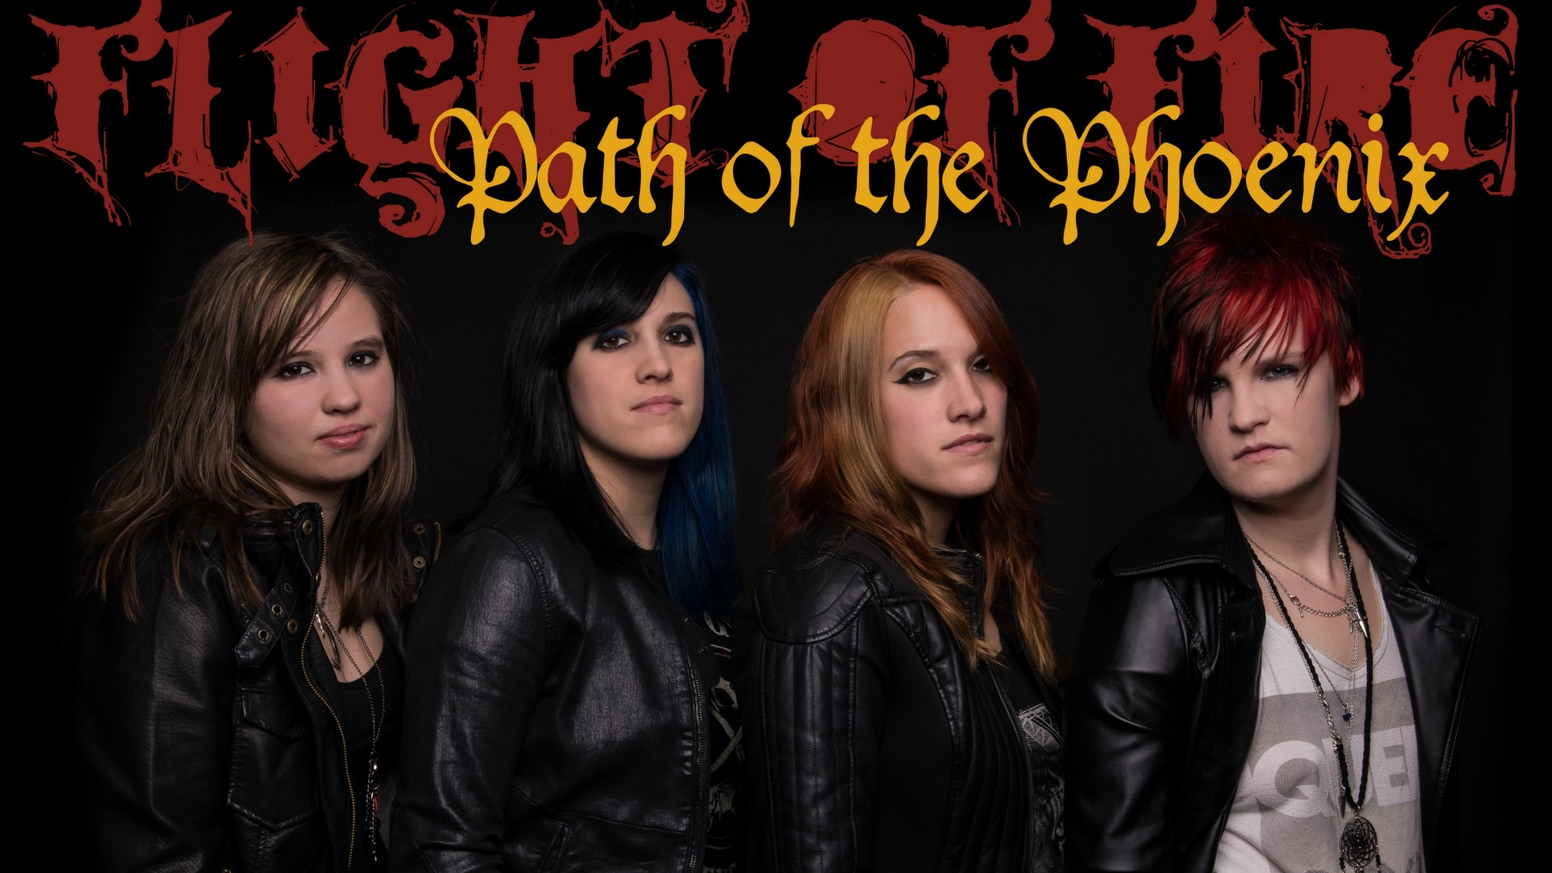 Flight Of Fires New Concept Album Path Of The Phoenix By Flight